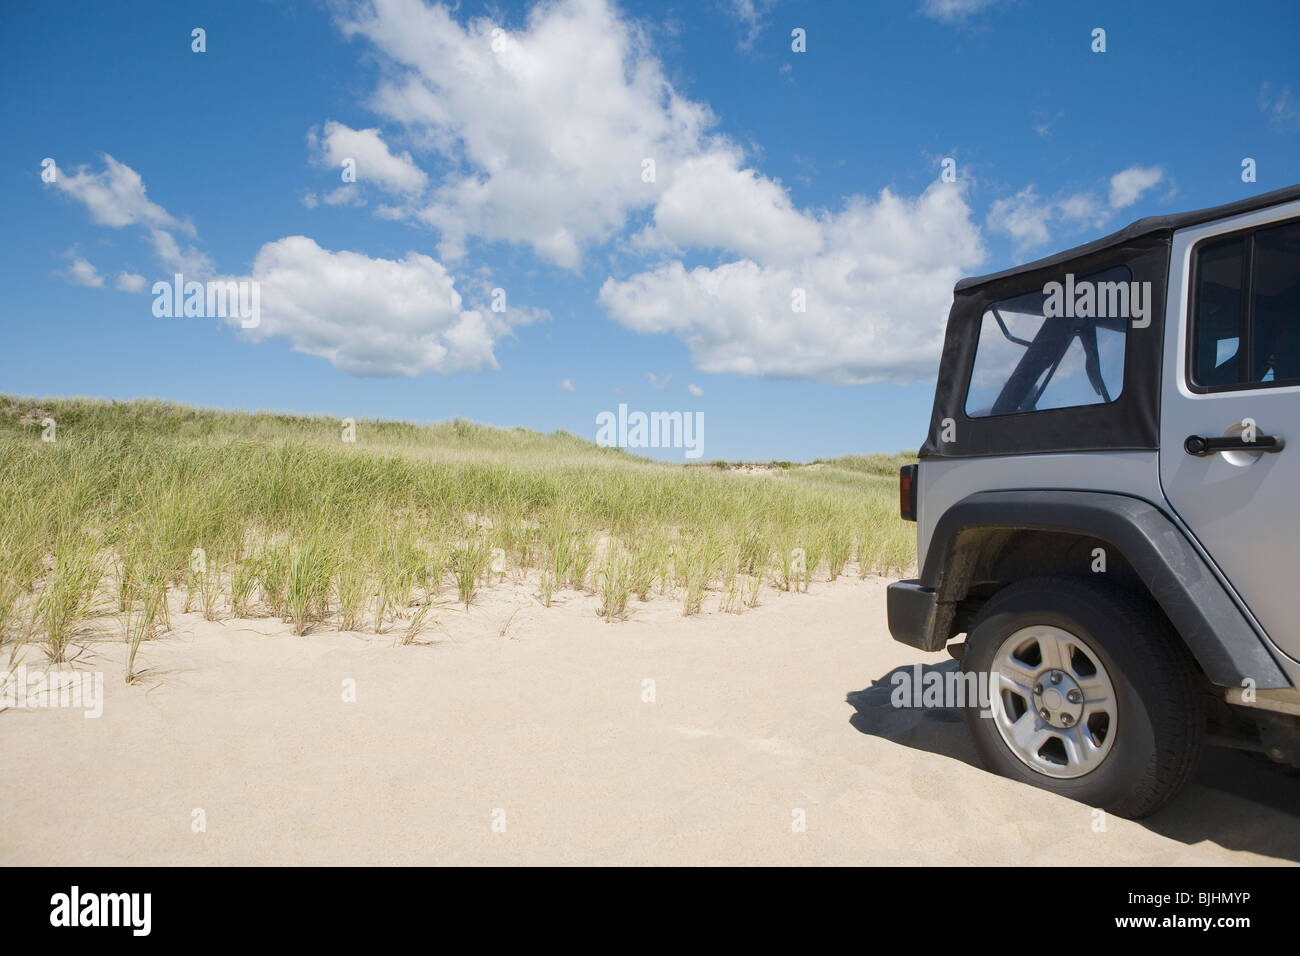 Jeep on the beach - Stock Image